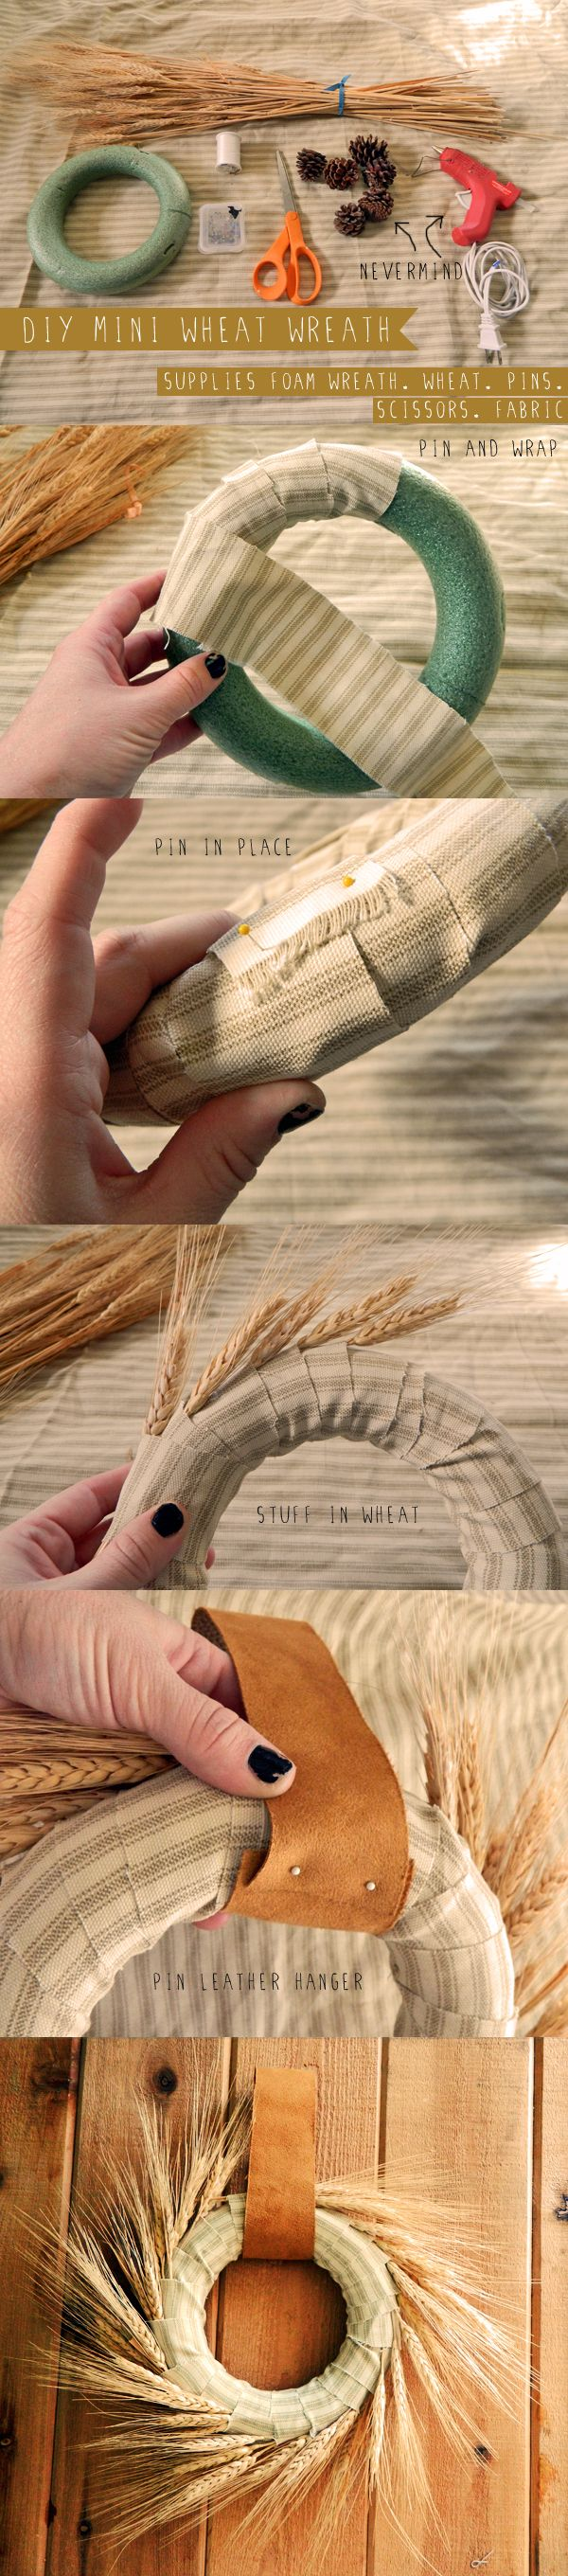 DIY Mini Wheat Wreath. Thanksgiving Chair Decorations